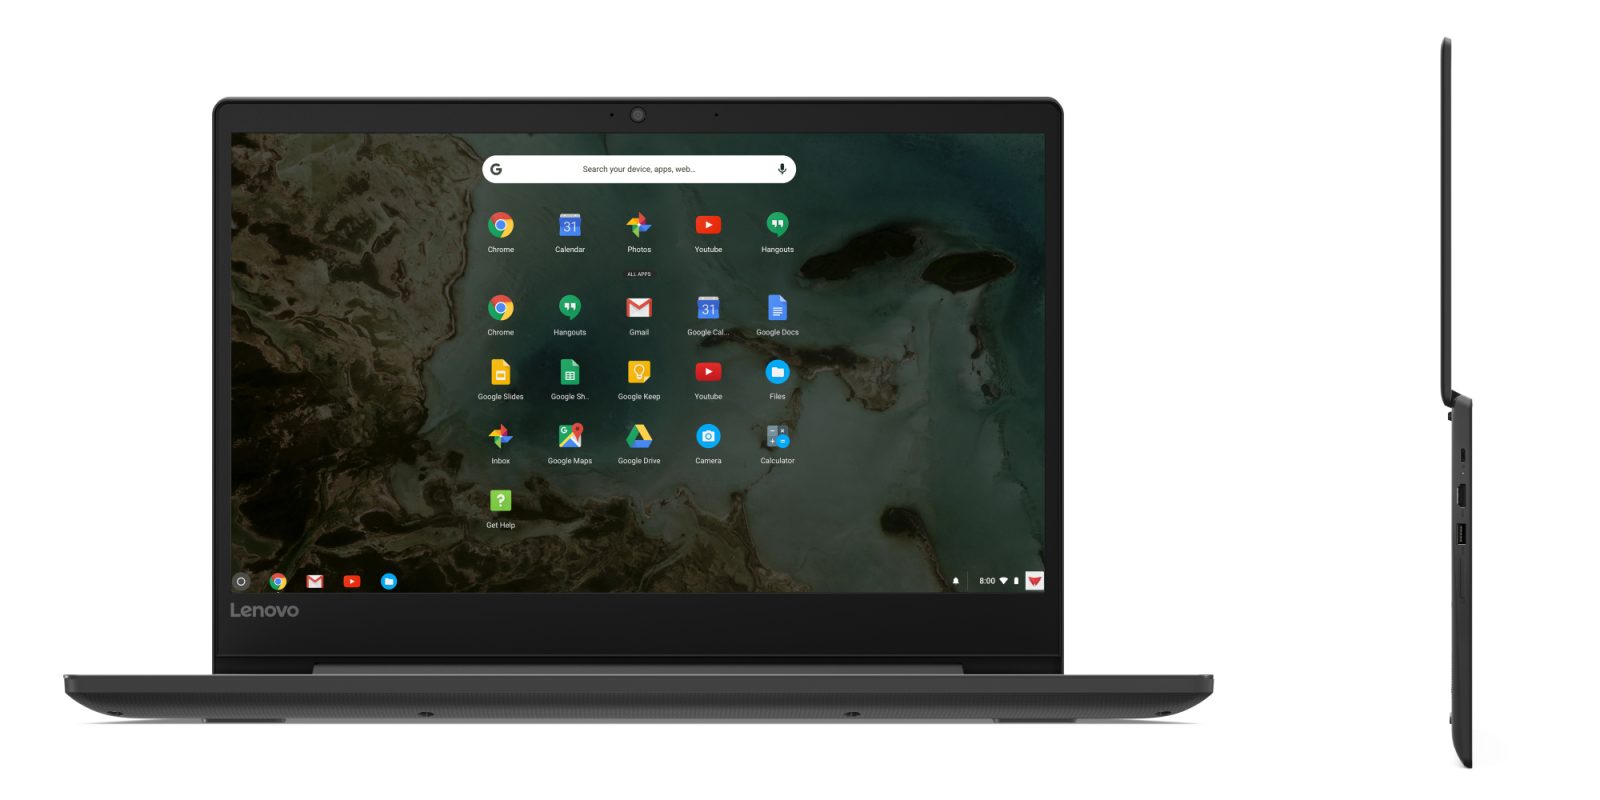 At $180, Lenovo's 14-inch USB-C Chromebook has hit a 2019 low (Reg. $250)